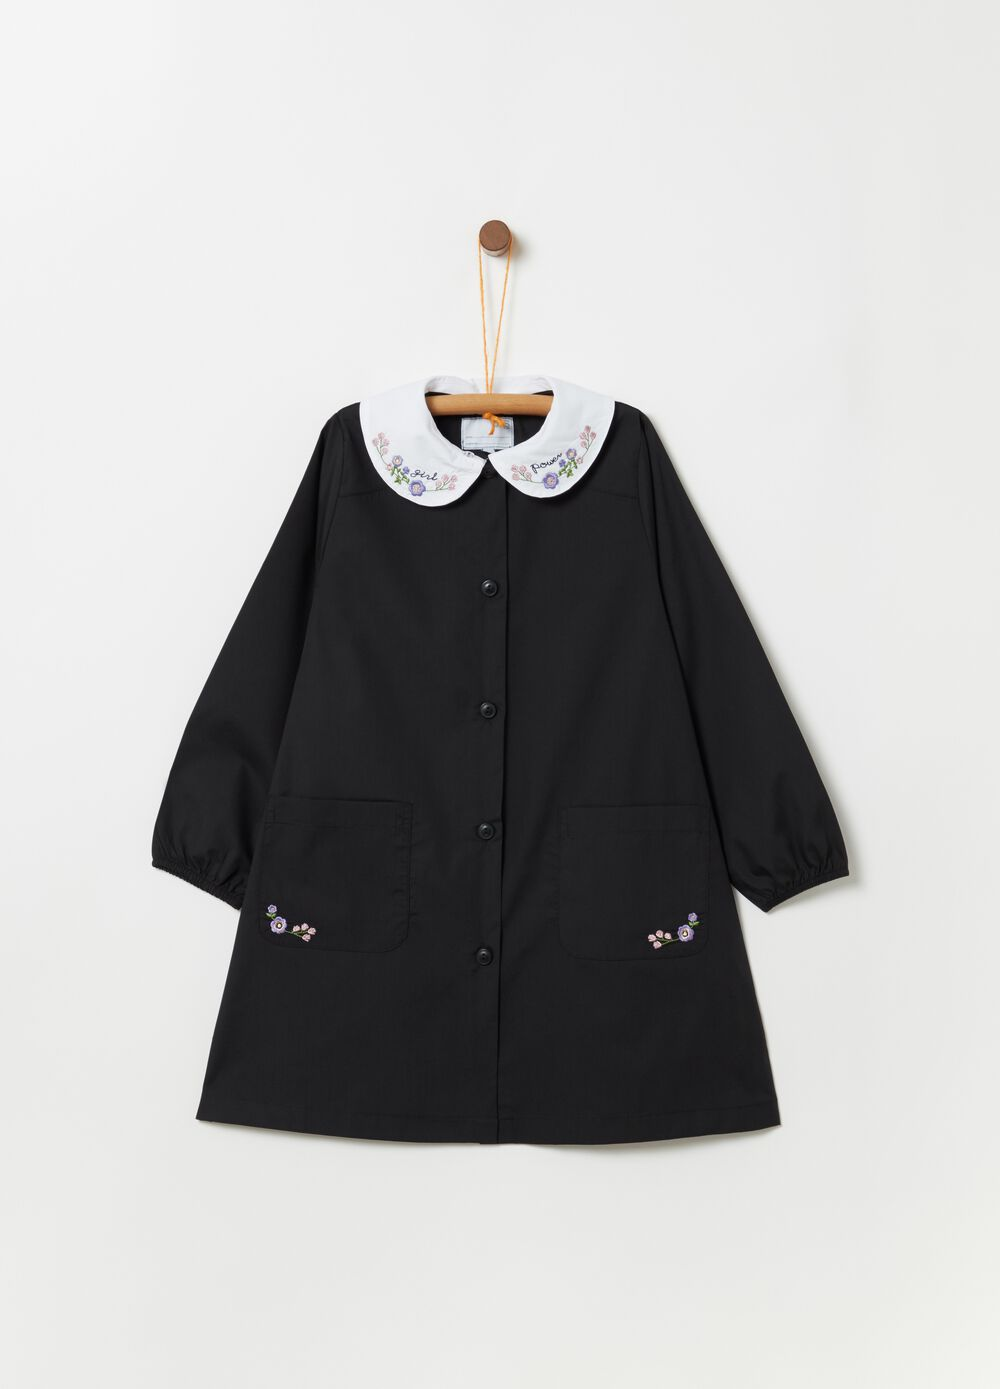 School smock with pockets and floral embroidery